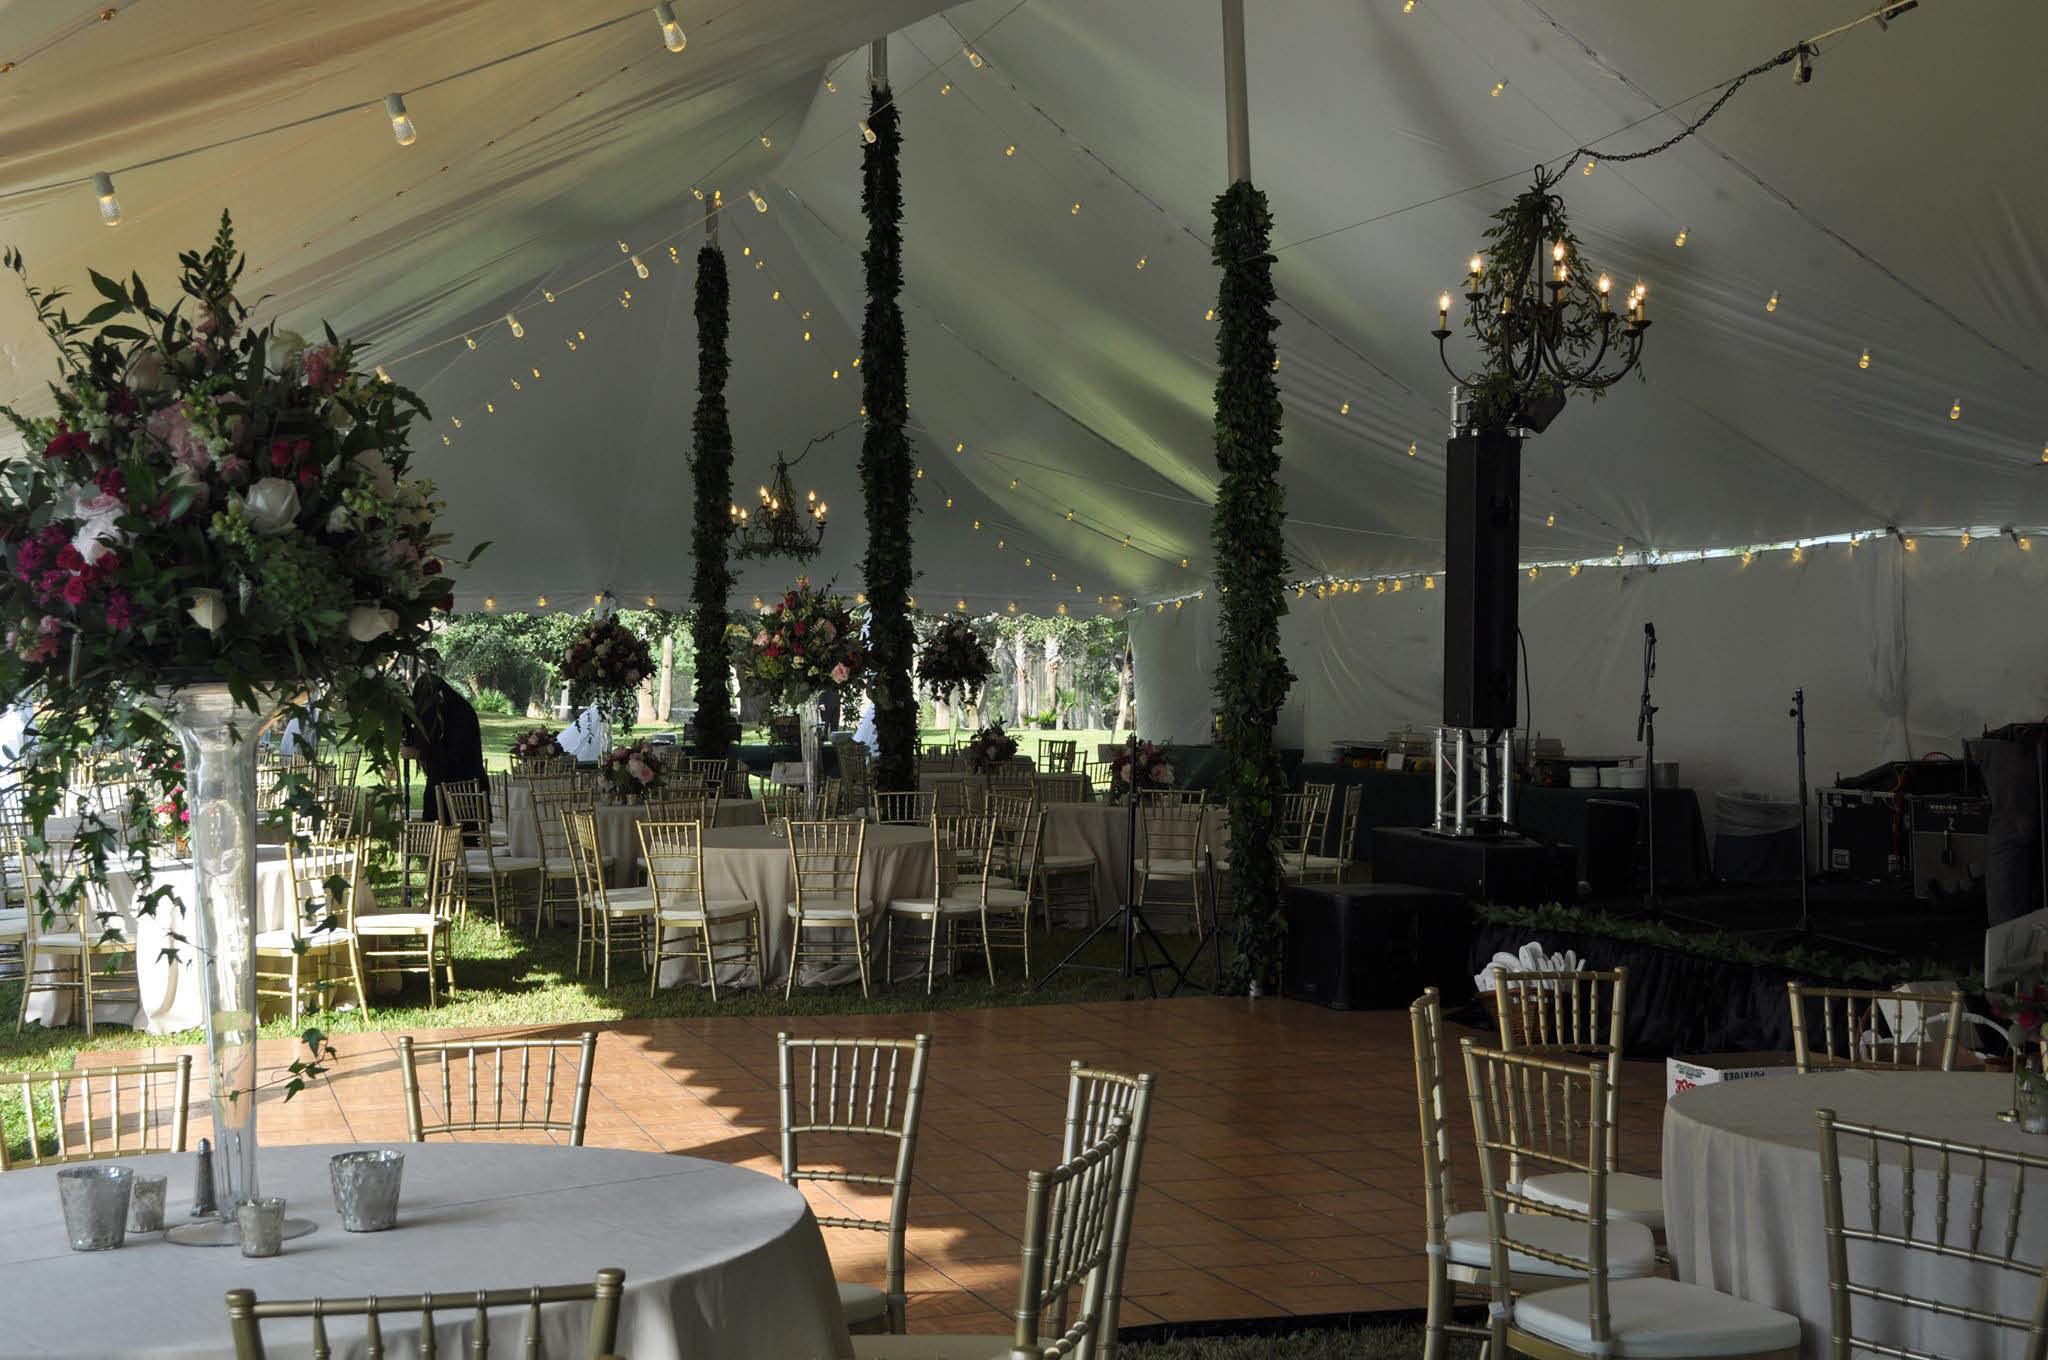 rental world, rental, valpak, rental coupon, rental discount, equipment, tent rental, pa, events, wedding, party, games, lawn mower, moving, construction, event planner, birthday, remodel